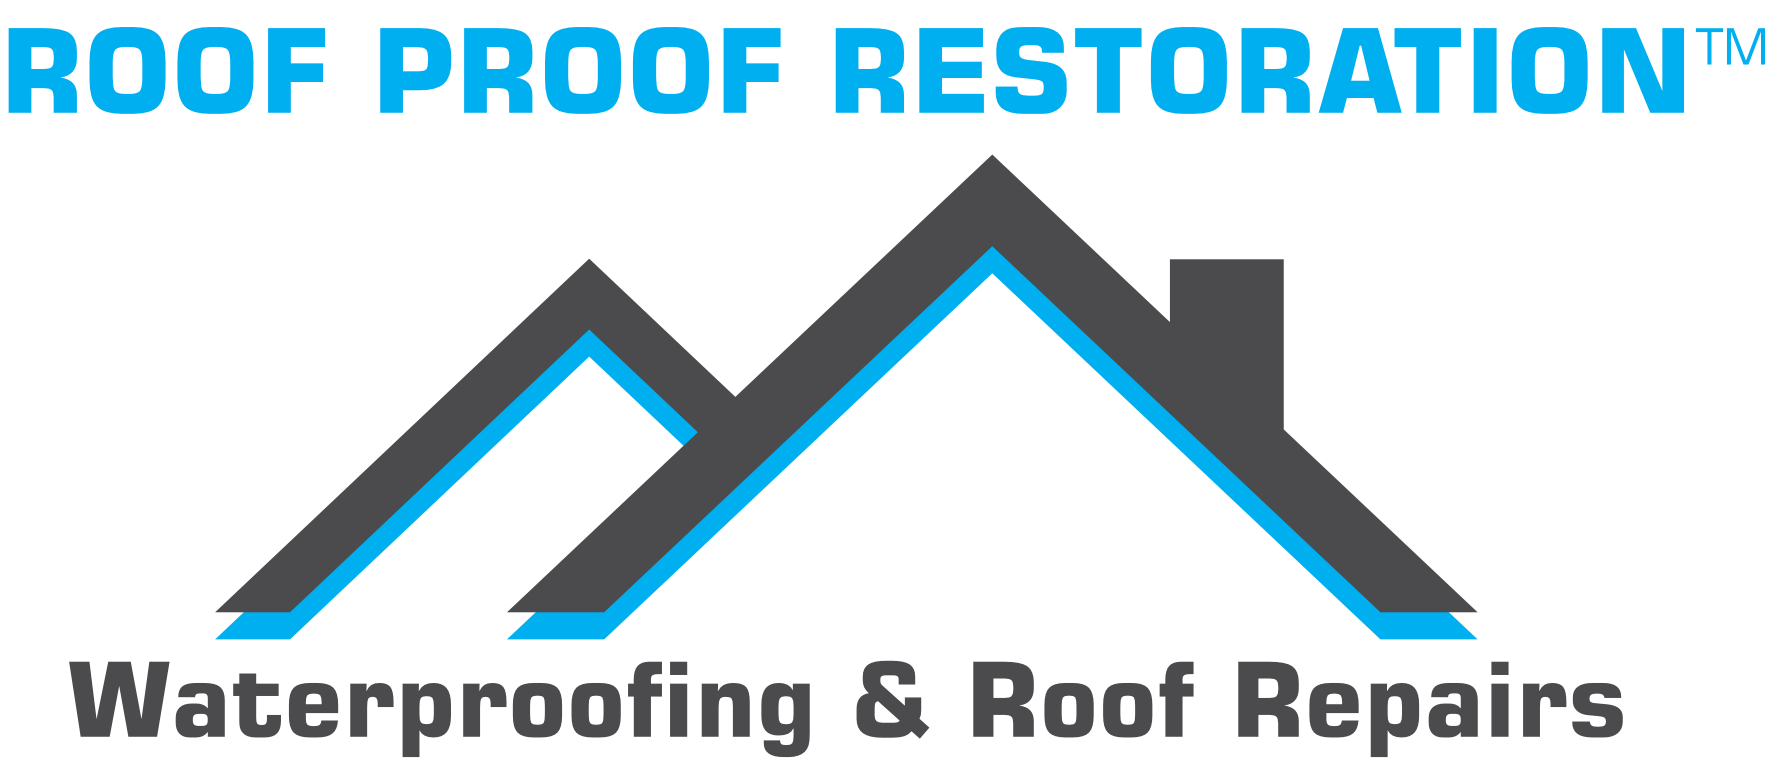 Roof Proof Restoration